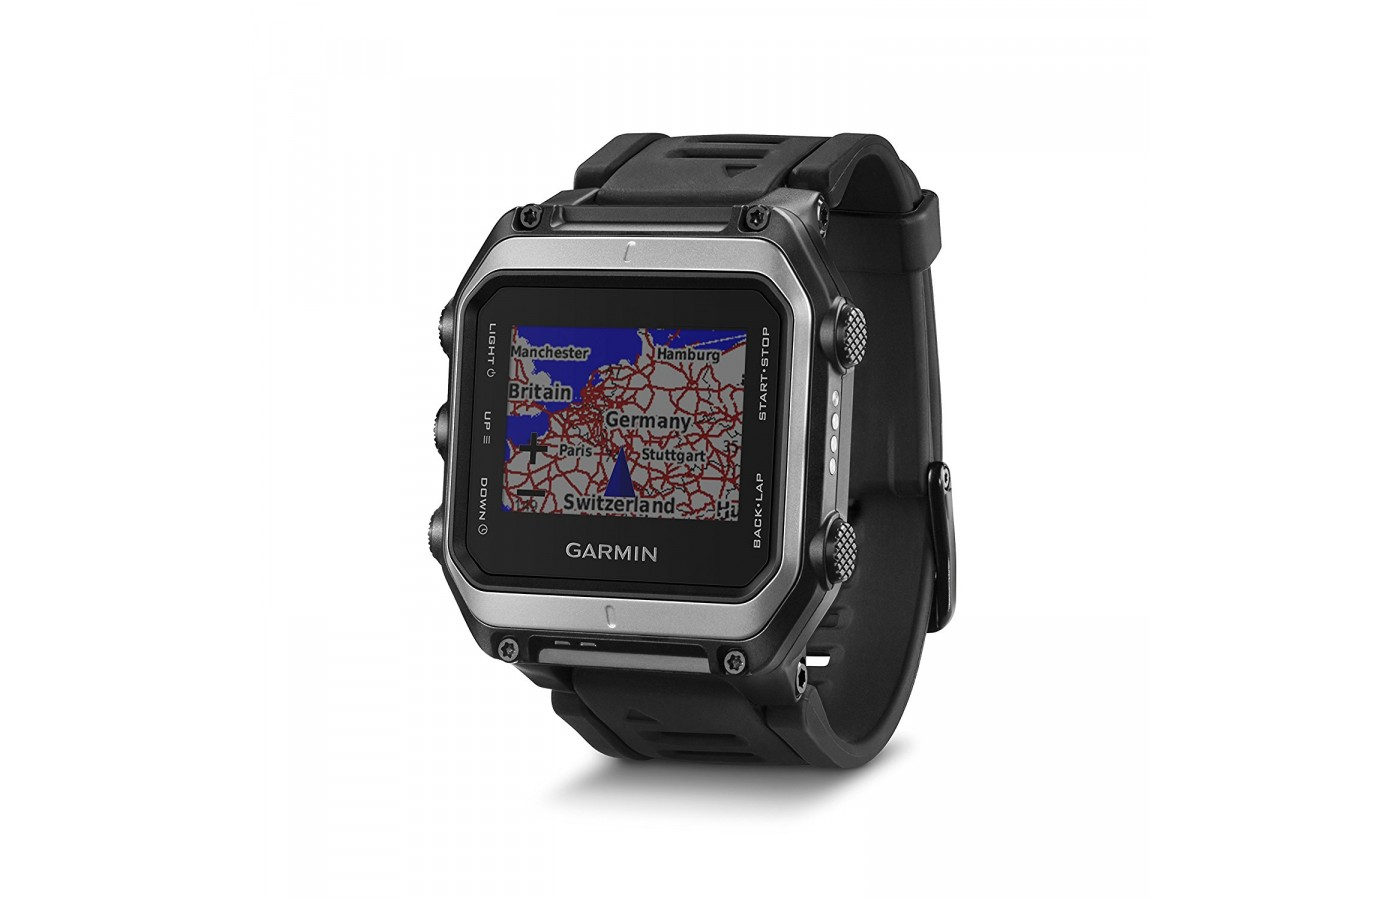 The Garmin Epix features a touchscreen and buttons for navigation.